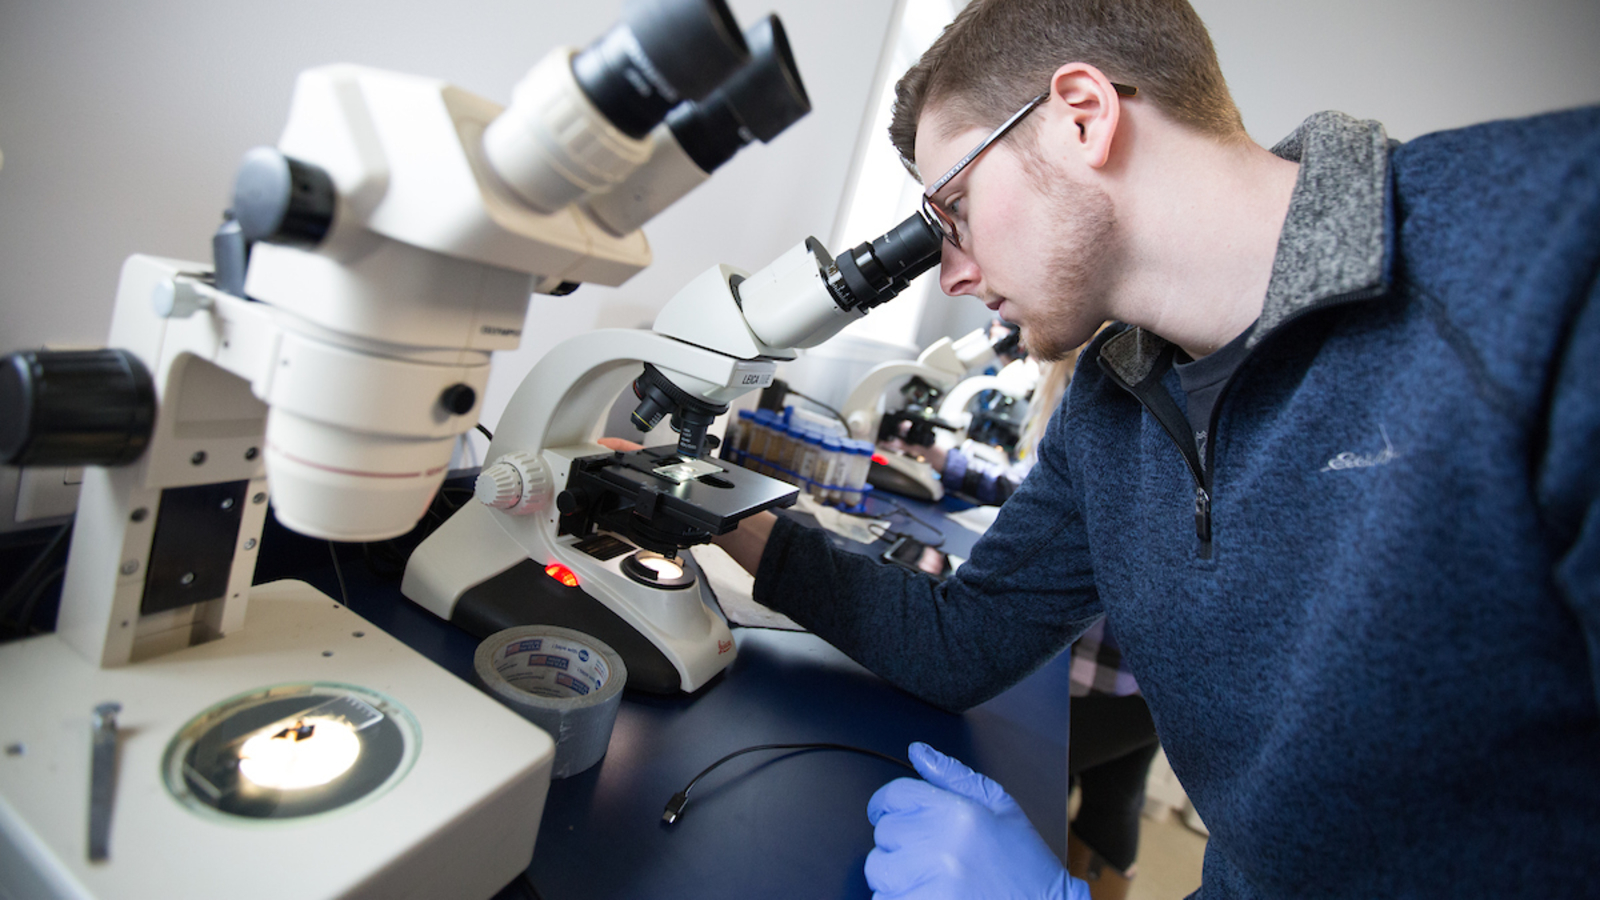 students work in a lab setting with a microscope